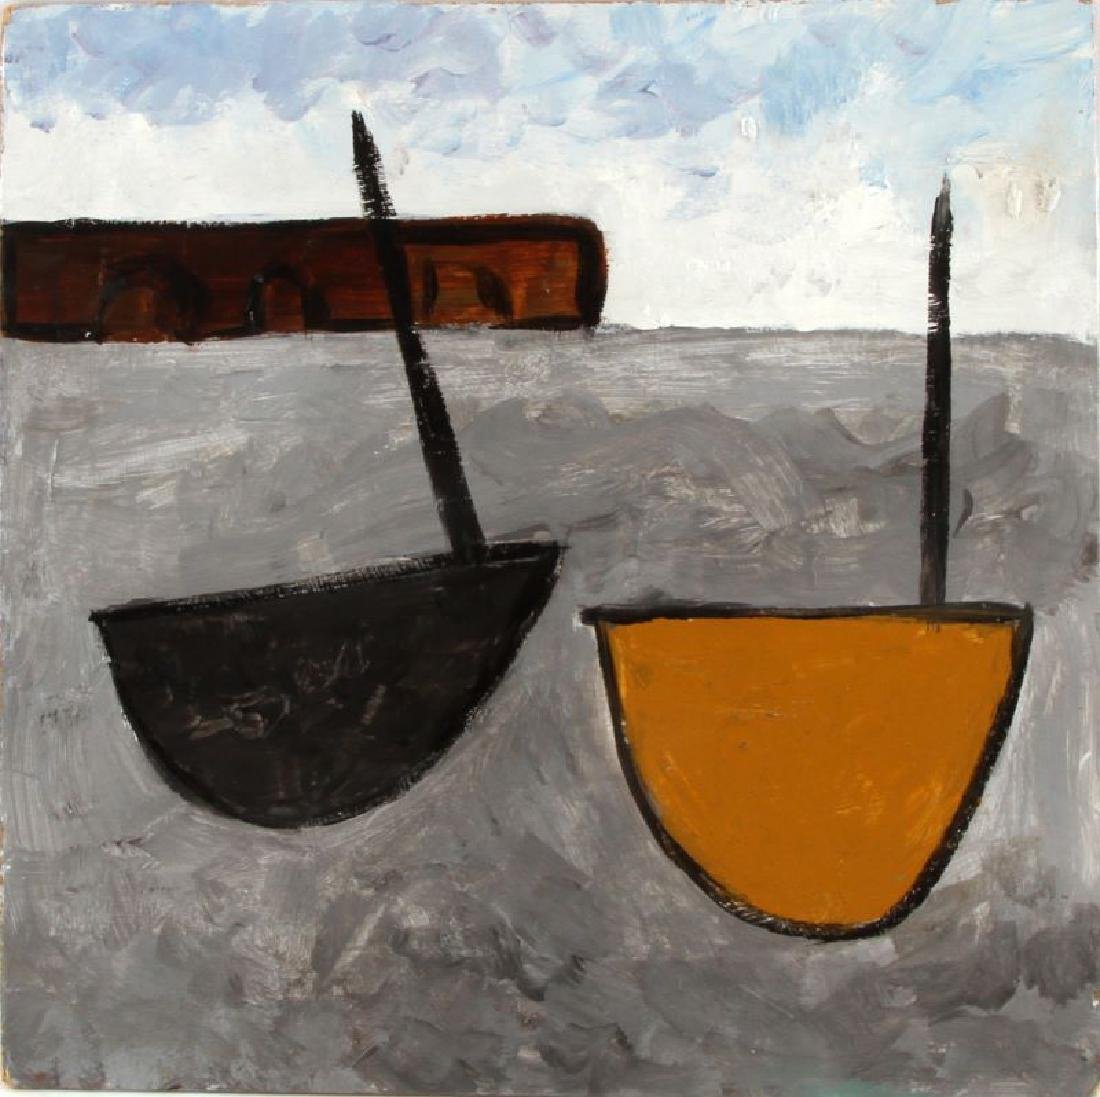 1934 WILLIAM SCOTT TITLED TWO BOATS OIL ON BOARD